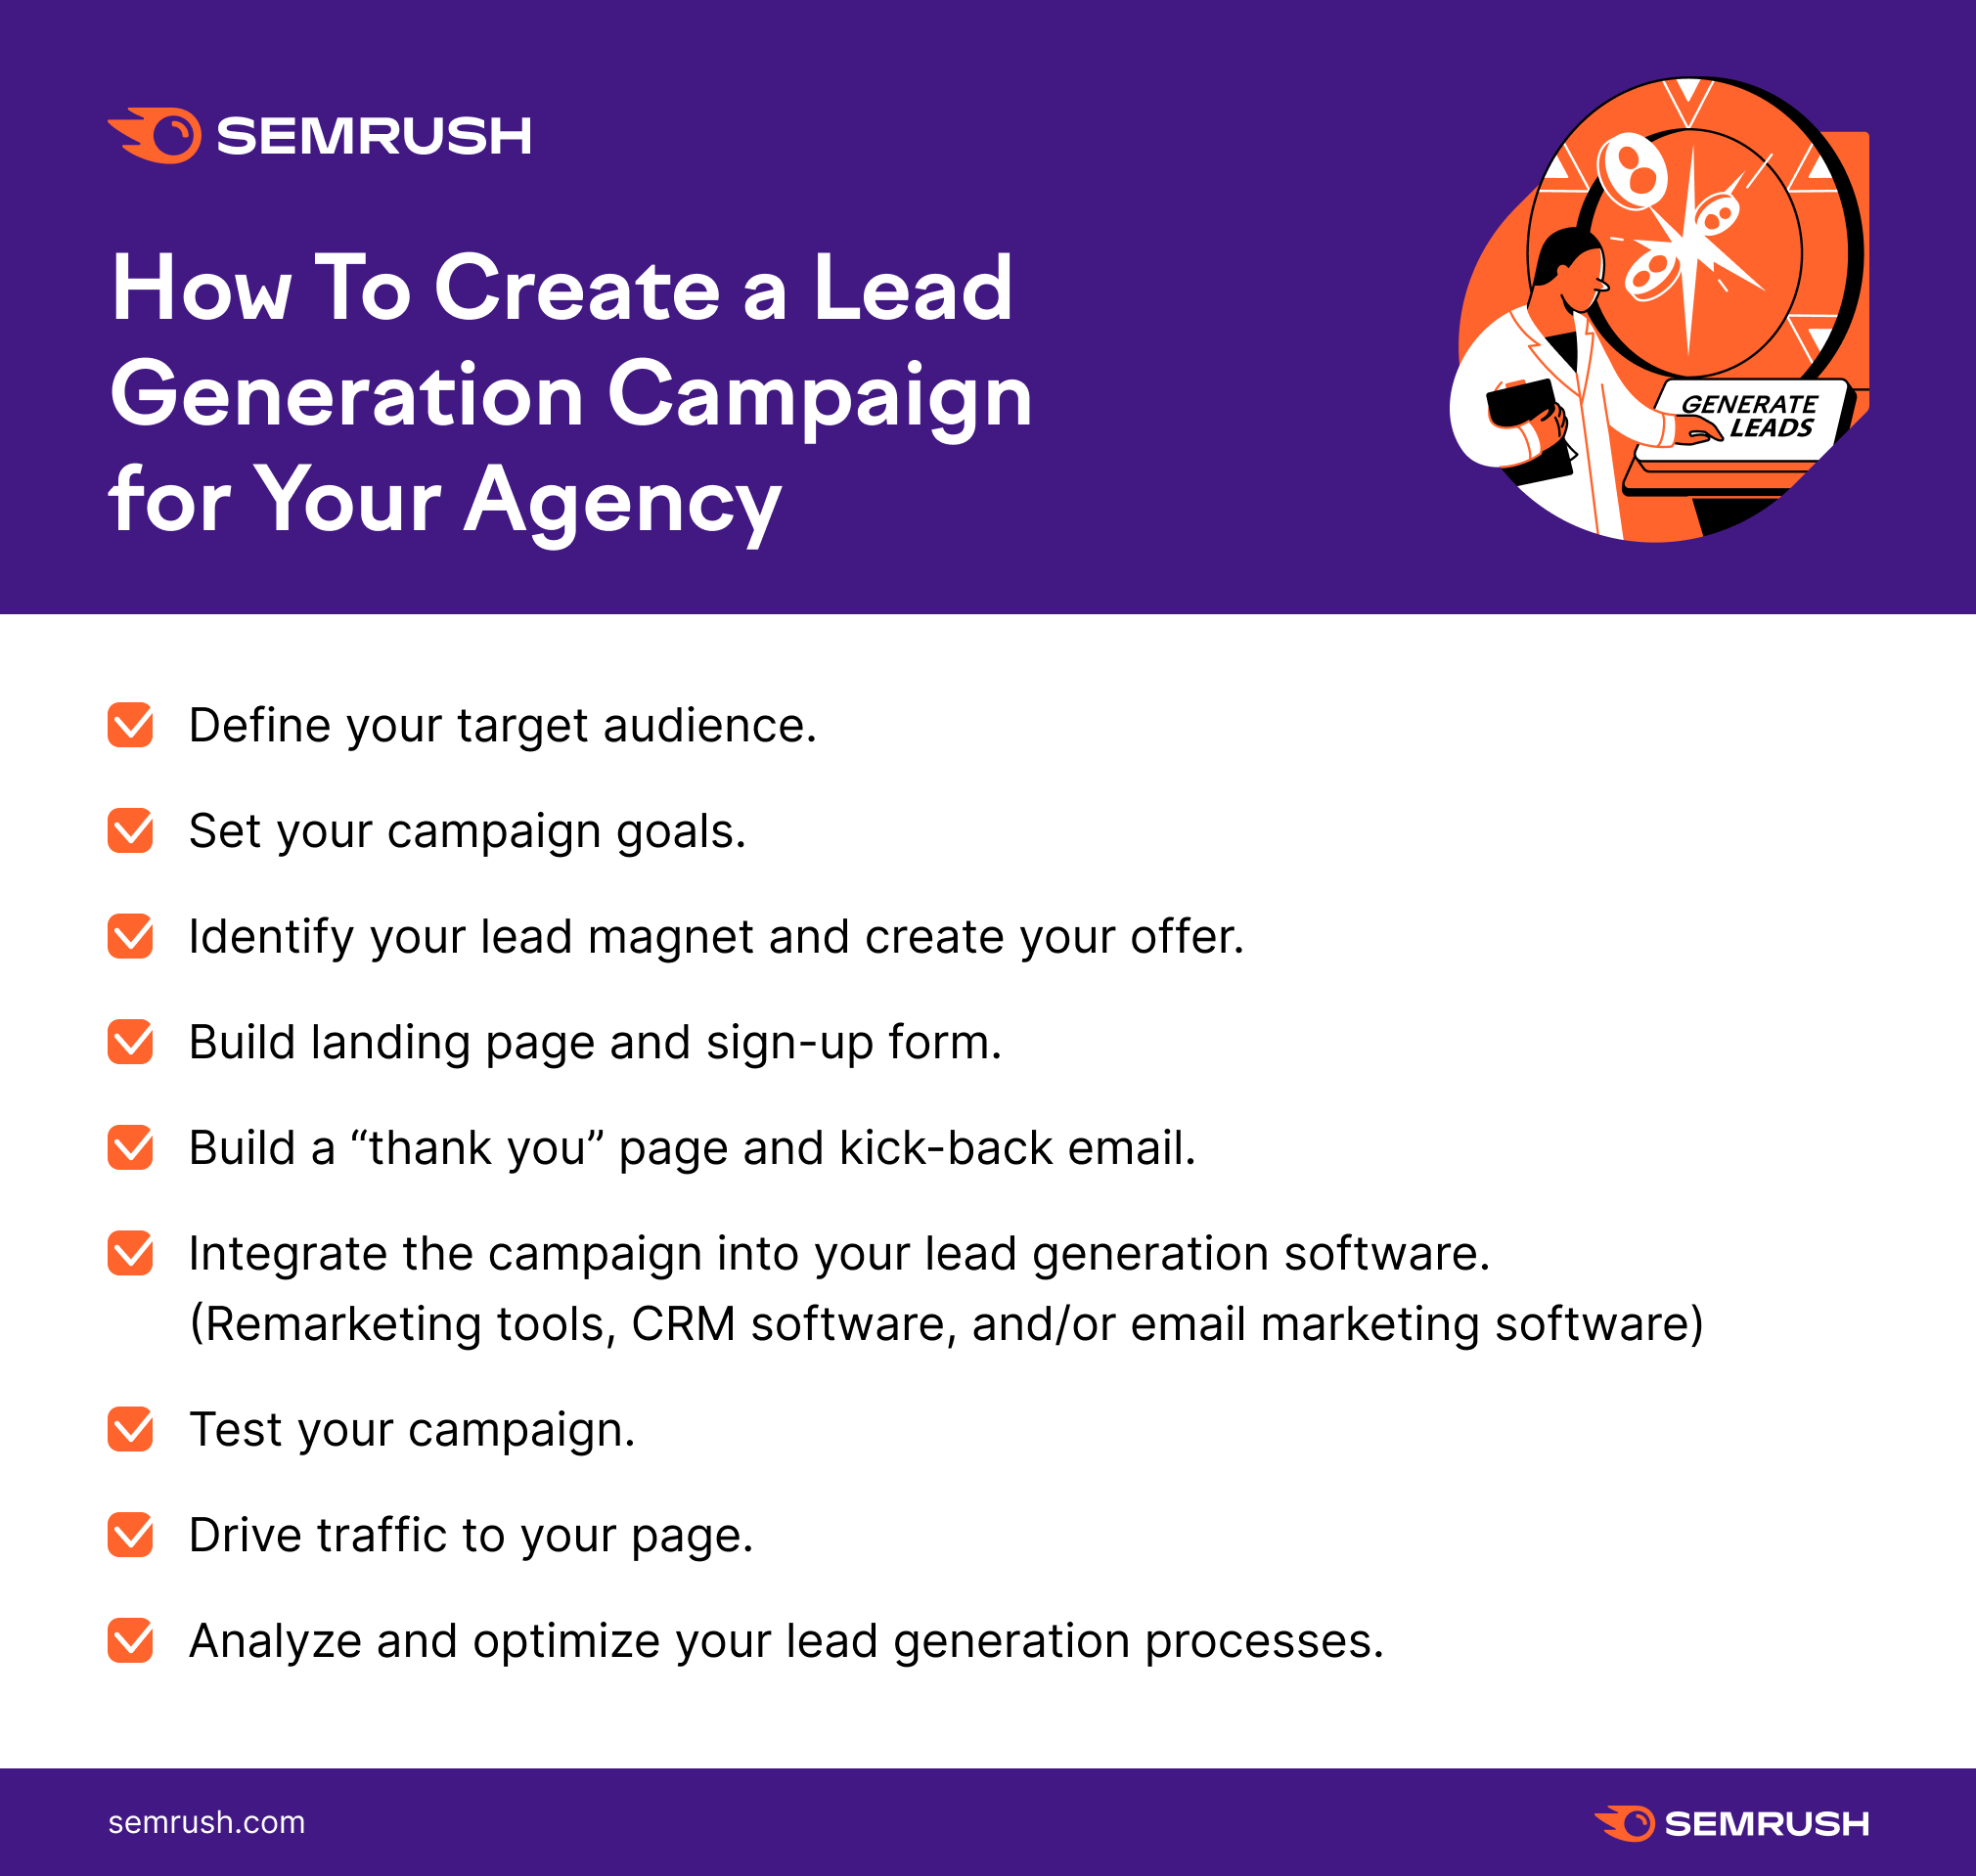 How To Create Lead Generation Campaign for Agency